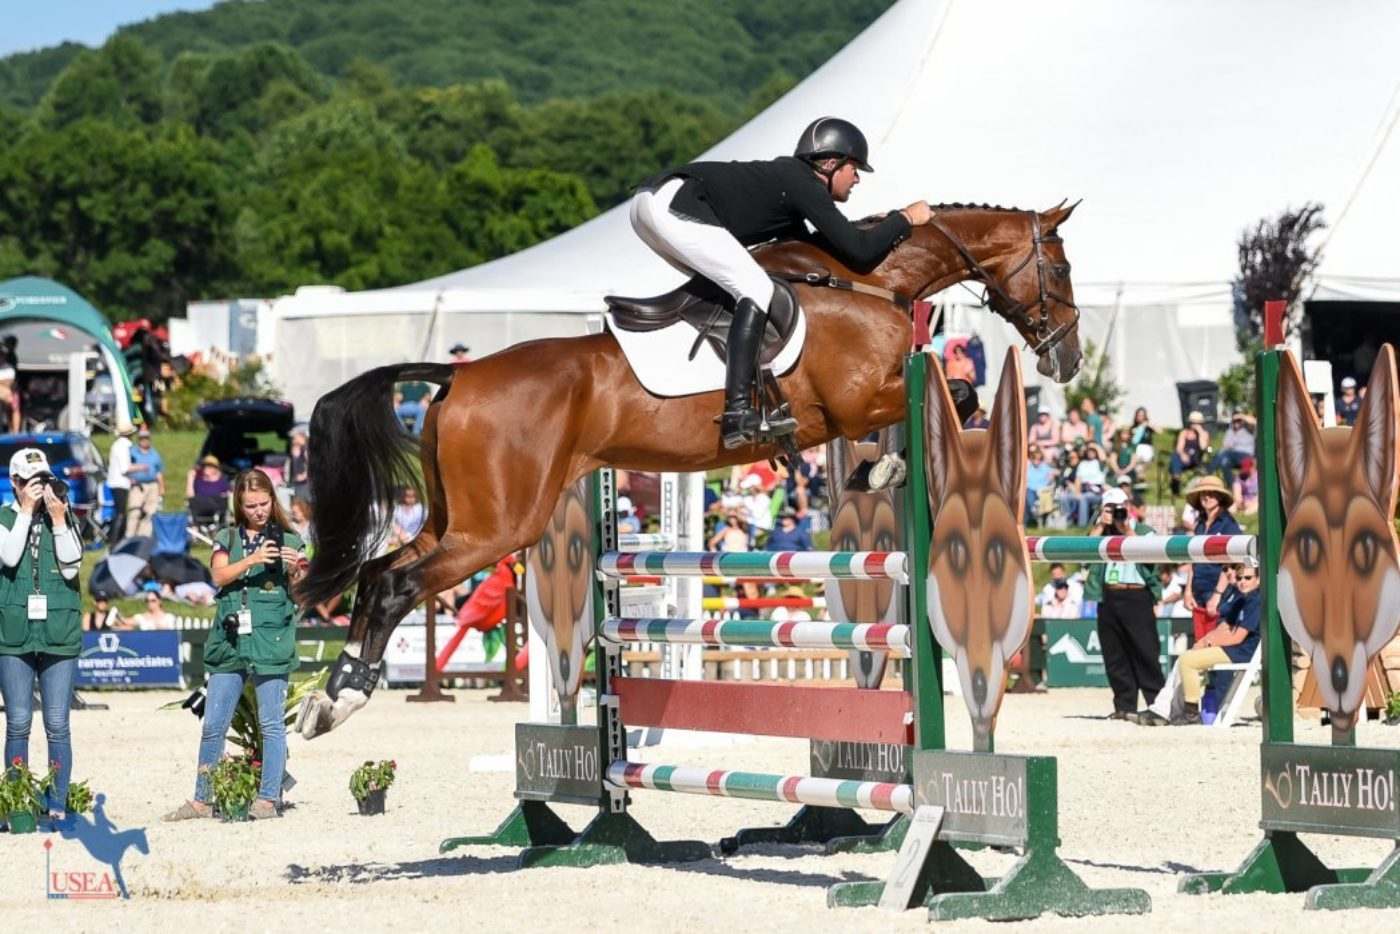 23rd - Will Faudree and Caeleste - 38.6